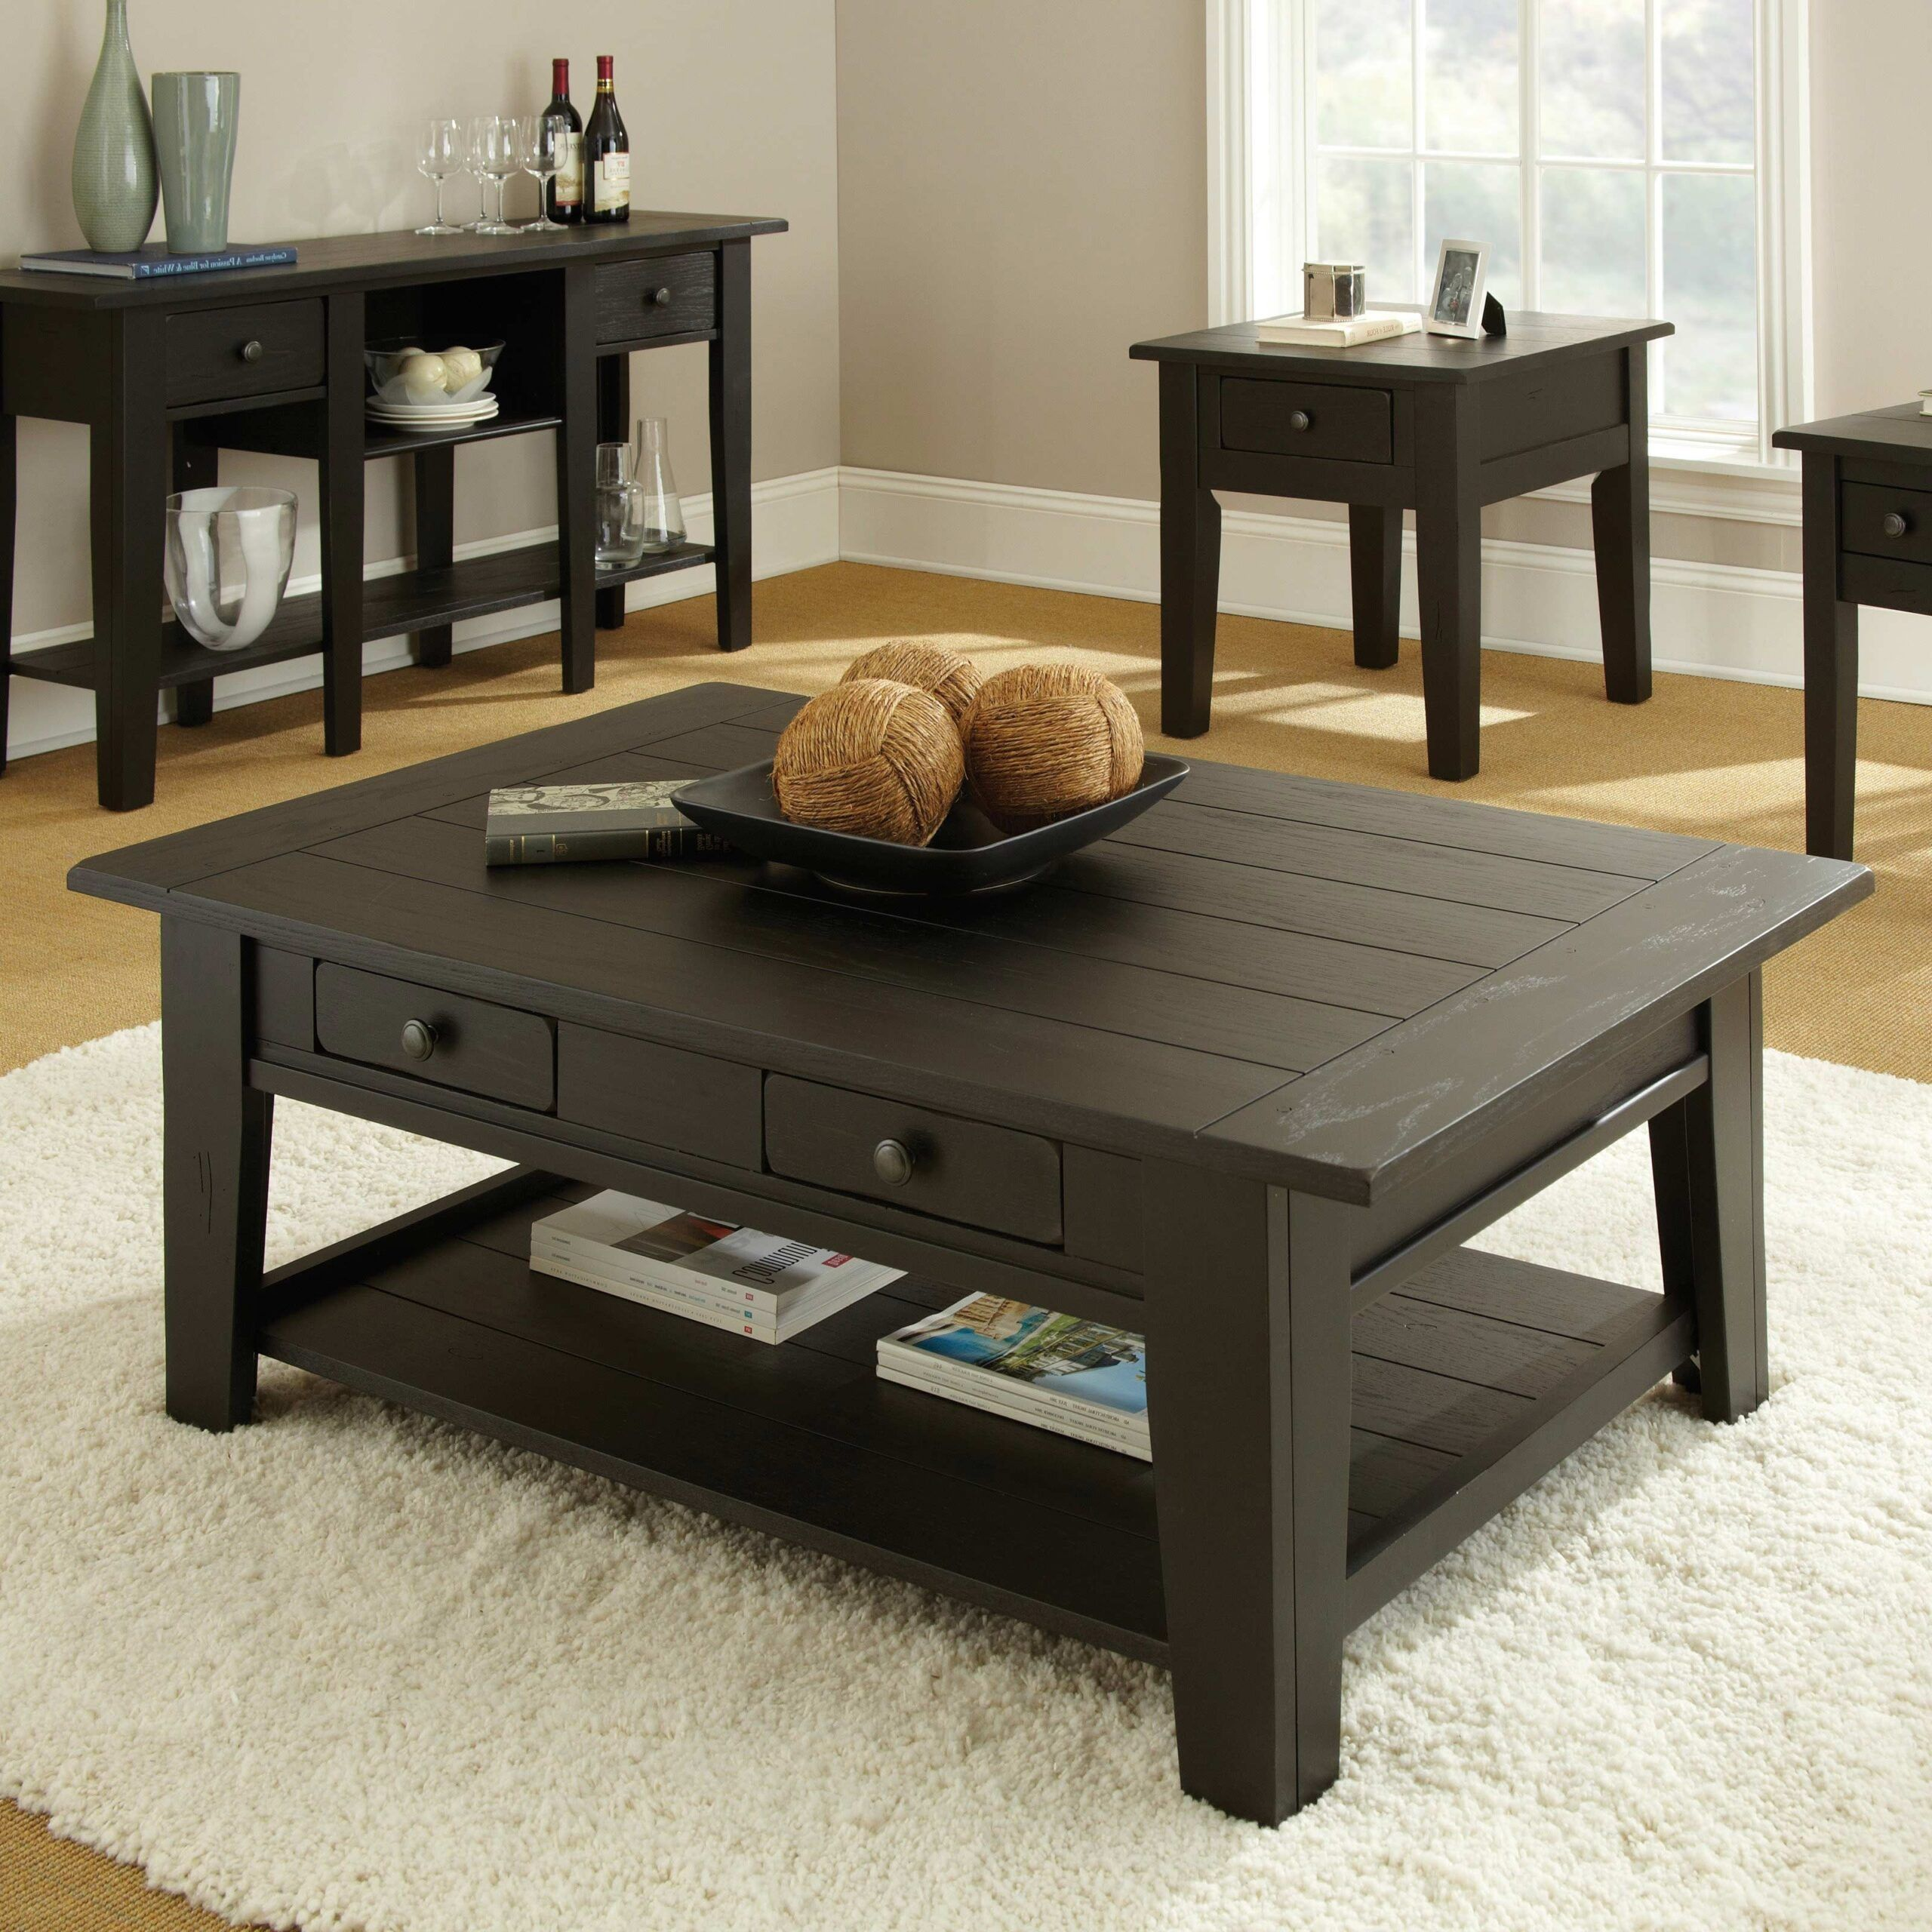 Amazing Coffee Table Sets Coffee Table Decorating Coffee Tables Round Coffee Table Decor [ 2560 x 2560 Pixel ]